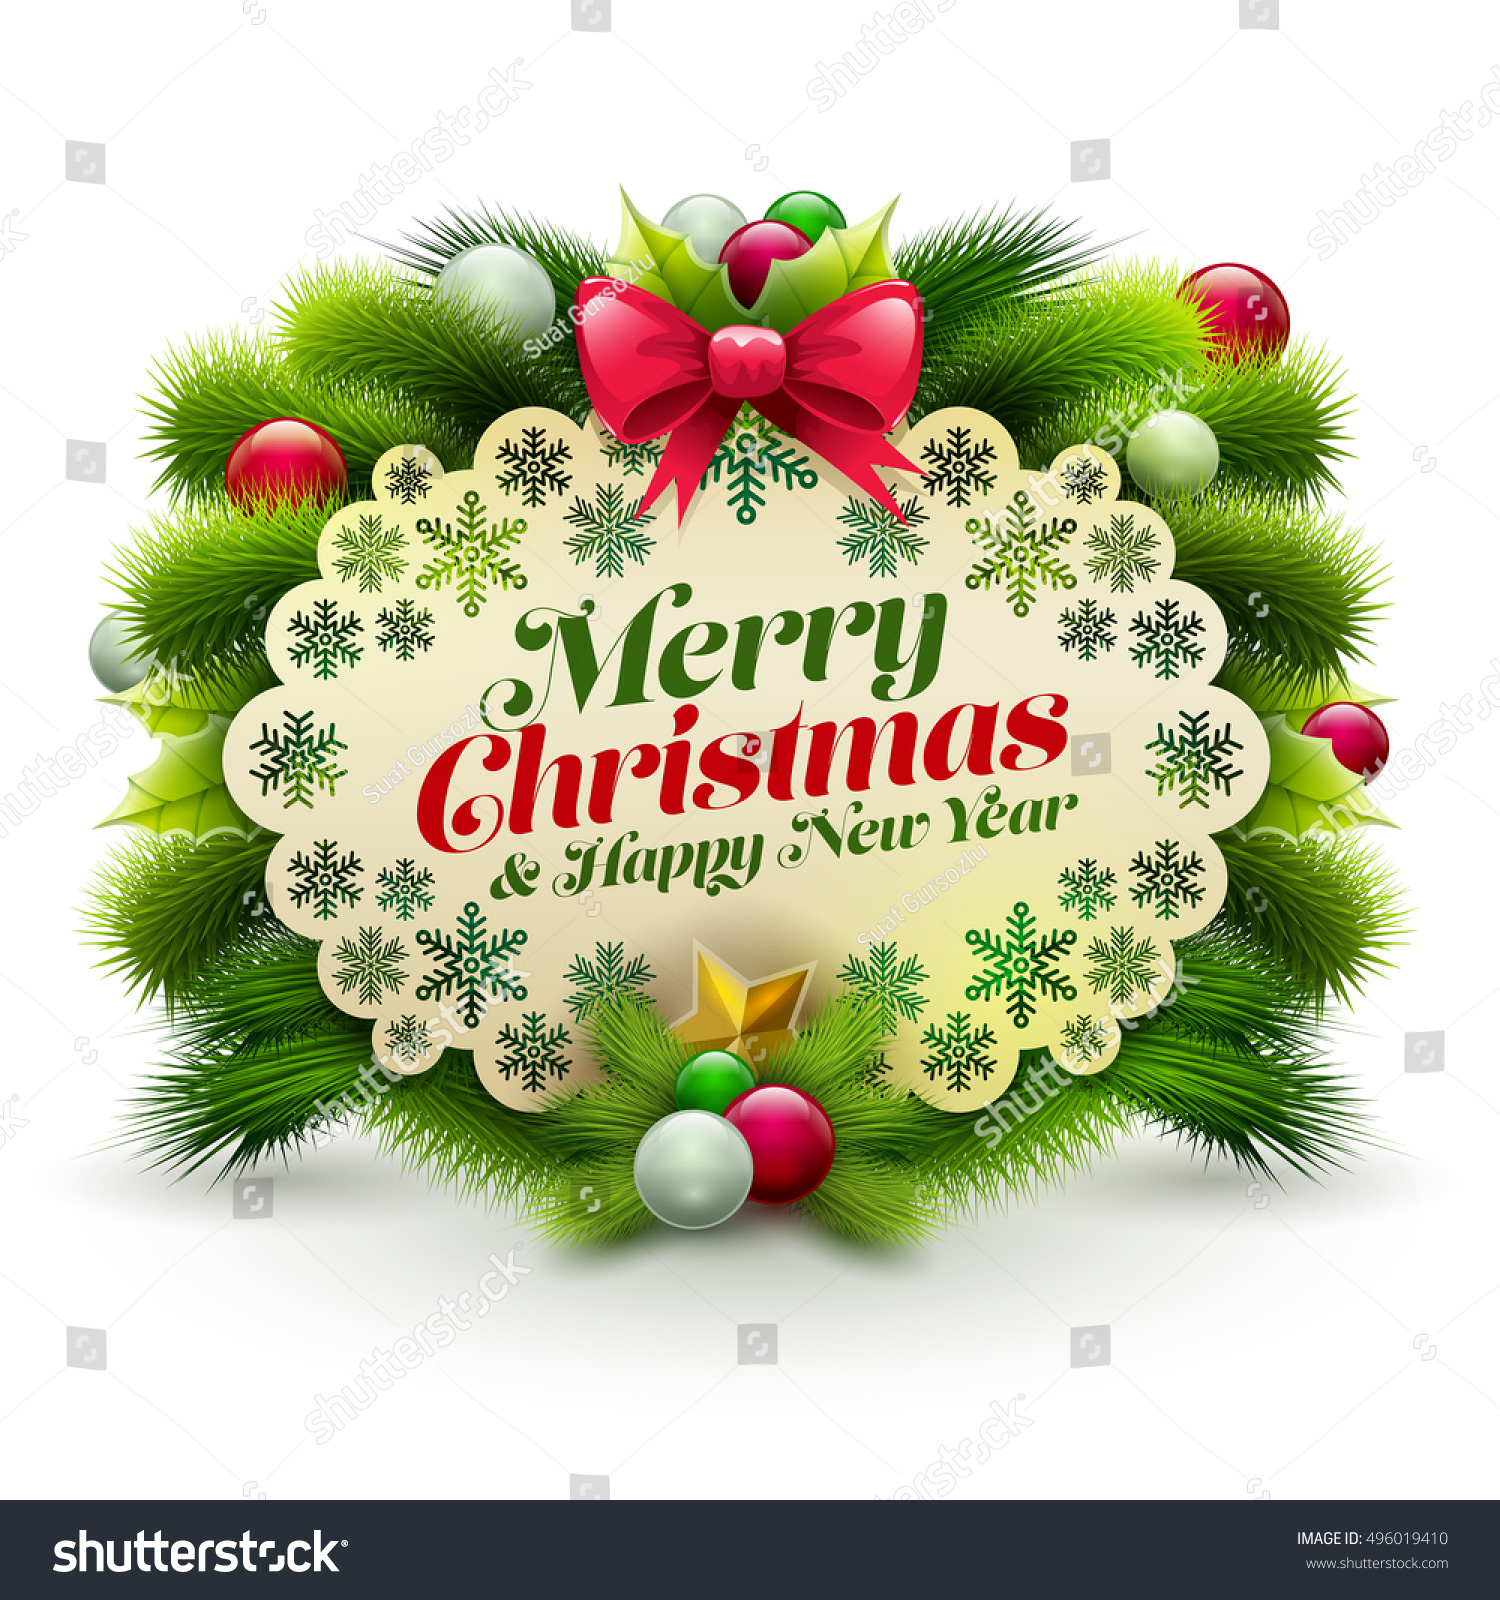 Christmas New Year Greeting Message Card Stock Vector 496019410